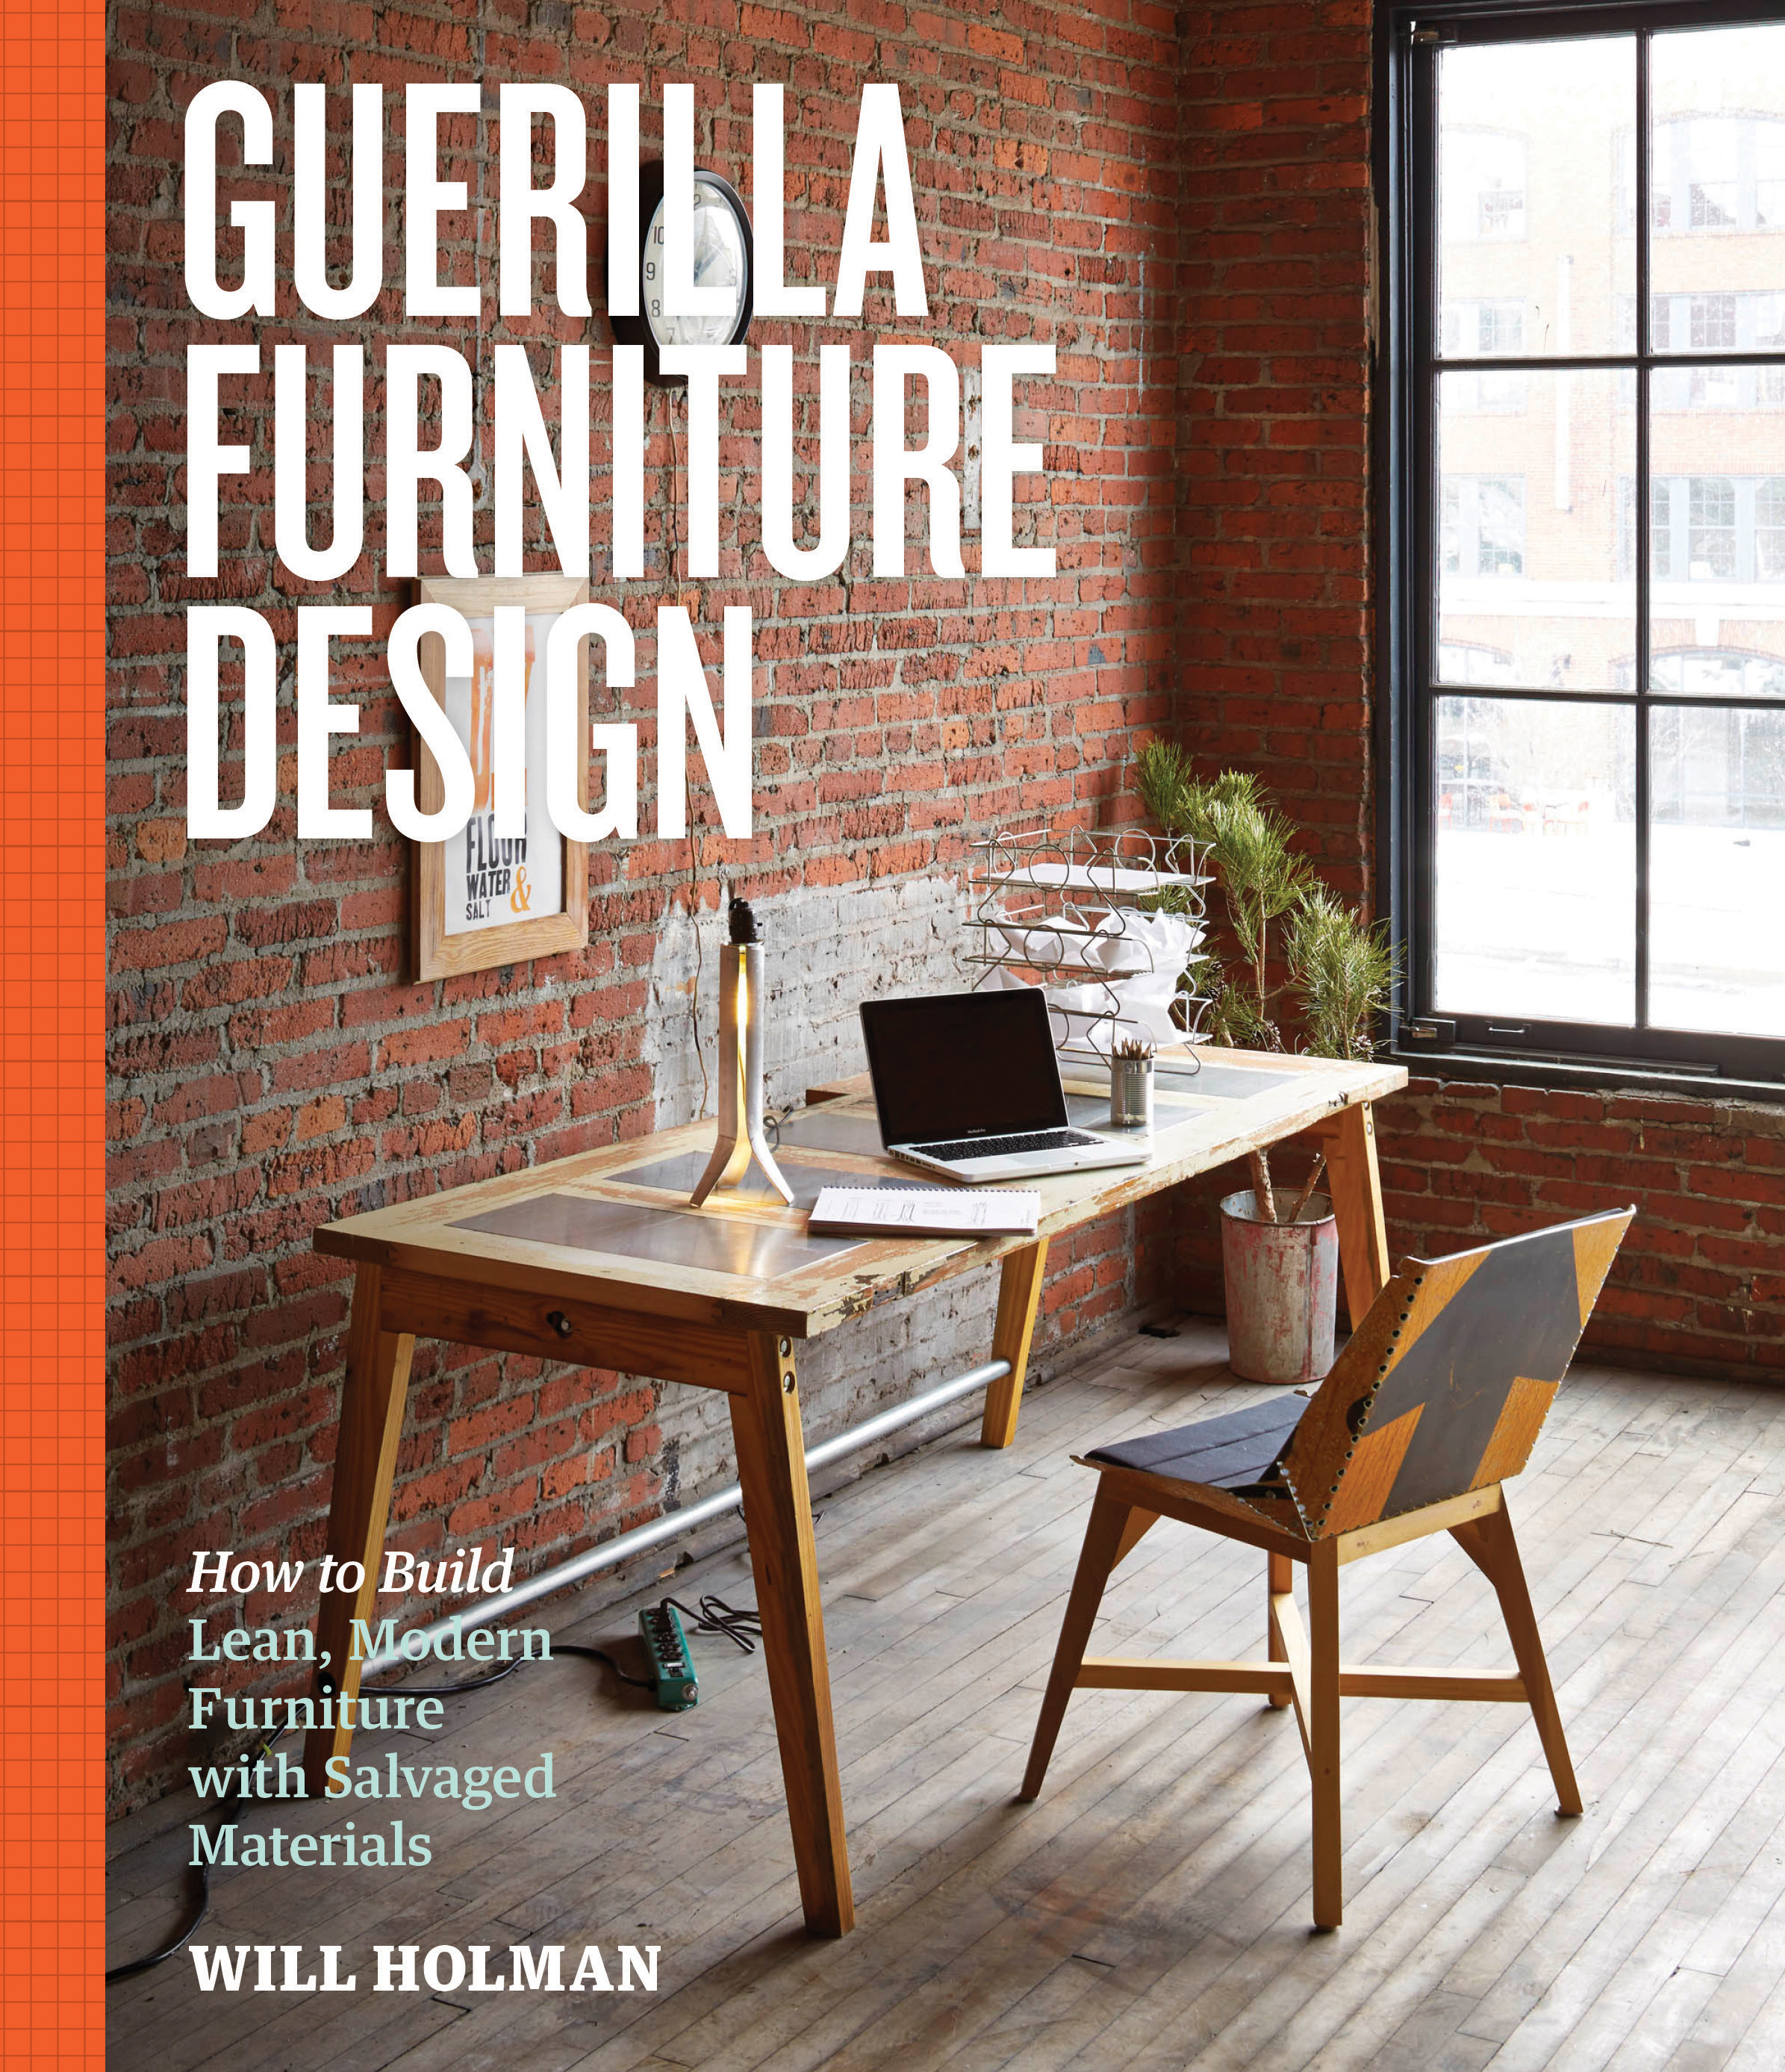 Guerilla Furniture Design How to Build Lean, Modern Furniture with Salvaged Materials - Will Holman